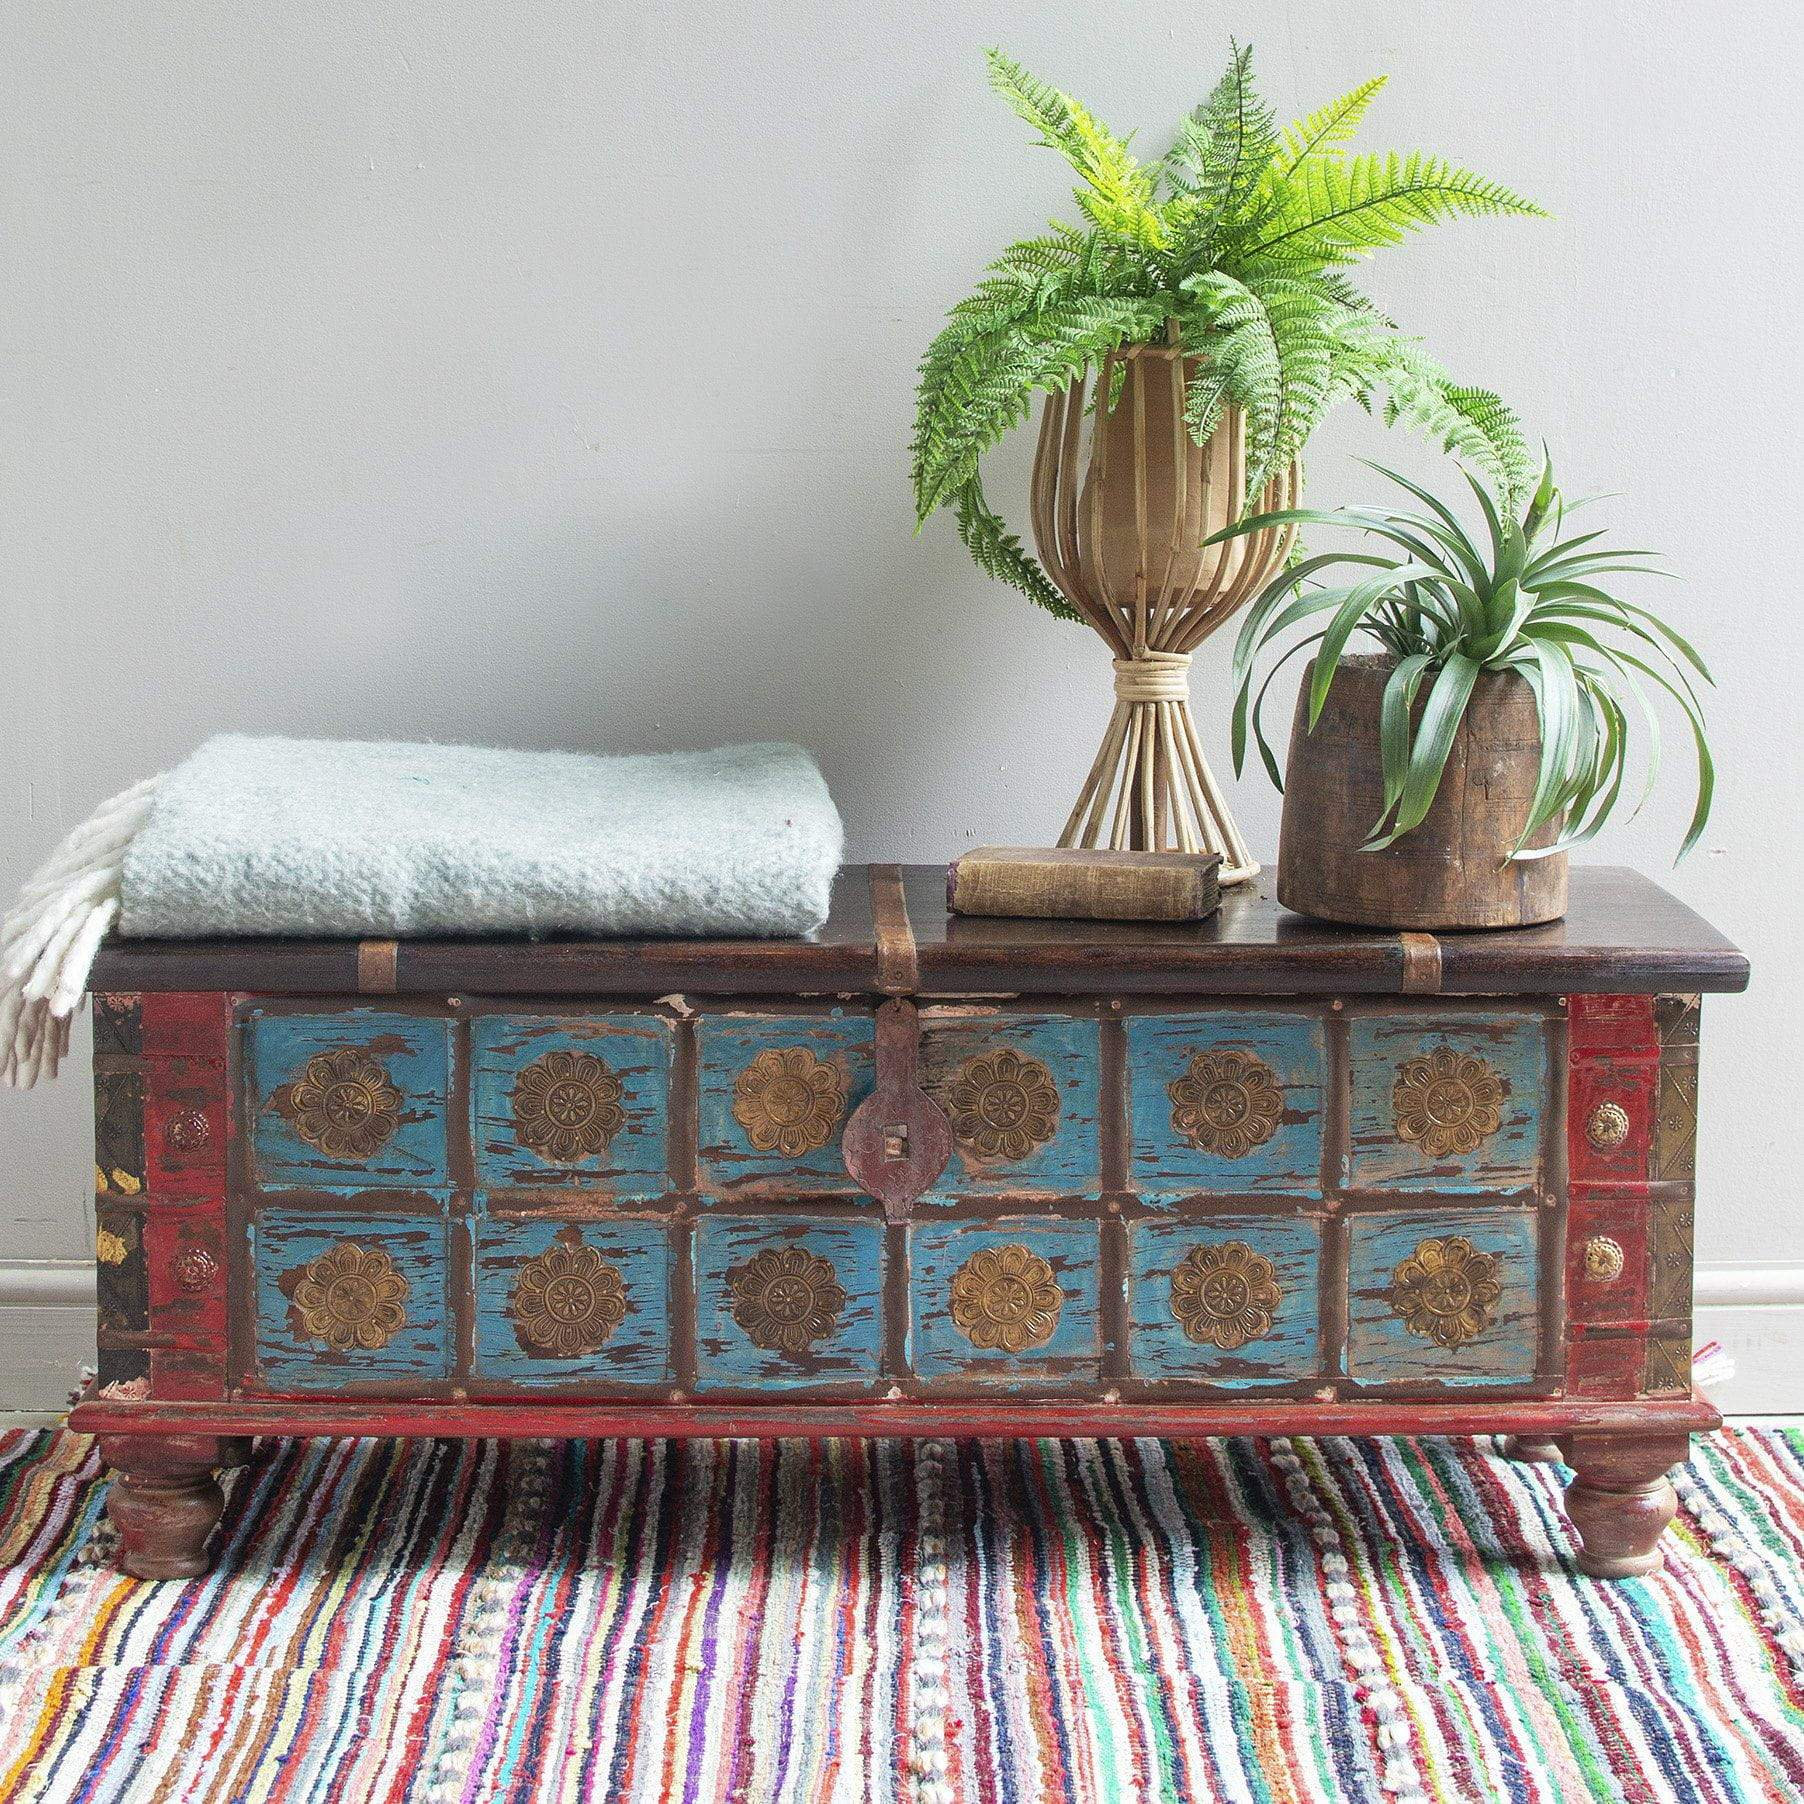 Ian Snow Ltd Blue Painted Trunk made from New and Reclaimed Wood with a Metal Trim